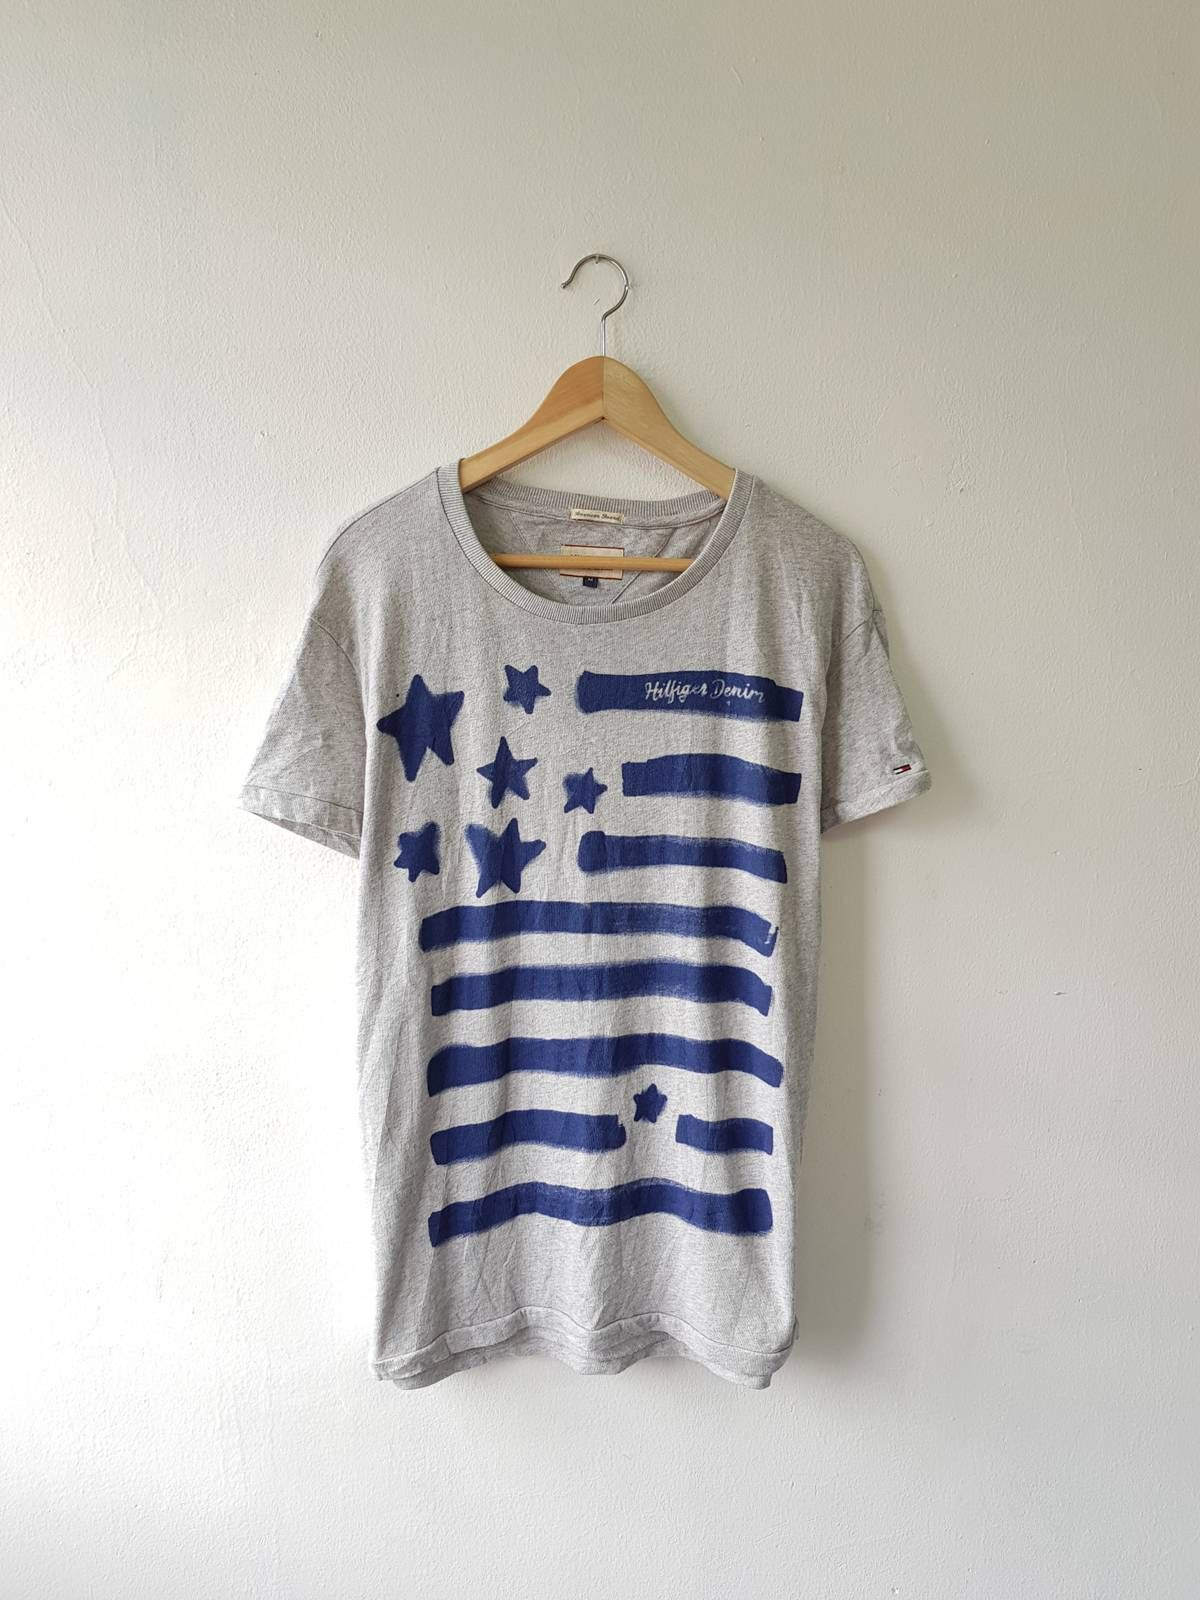 c8629a38 Buy Tommy Hilfiger Denim Giant USA Flag Graphic Printed Streetwear T-Shirt  Size M, Size: M, Description: Good Condition, no stain, damage or flaws.